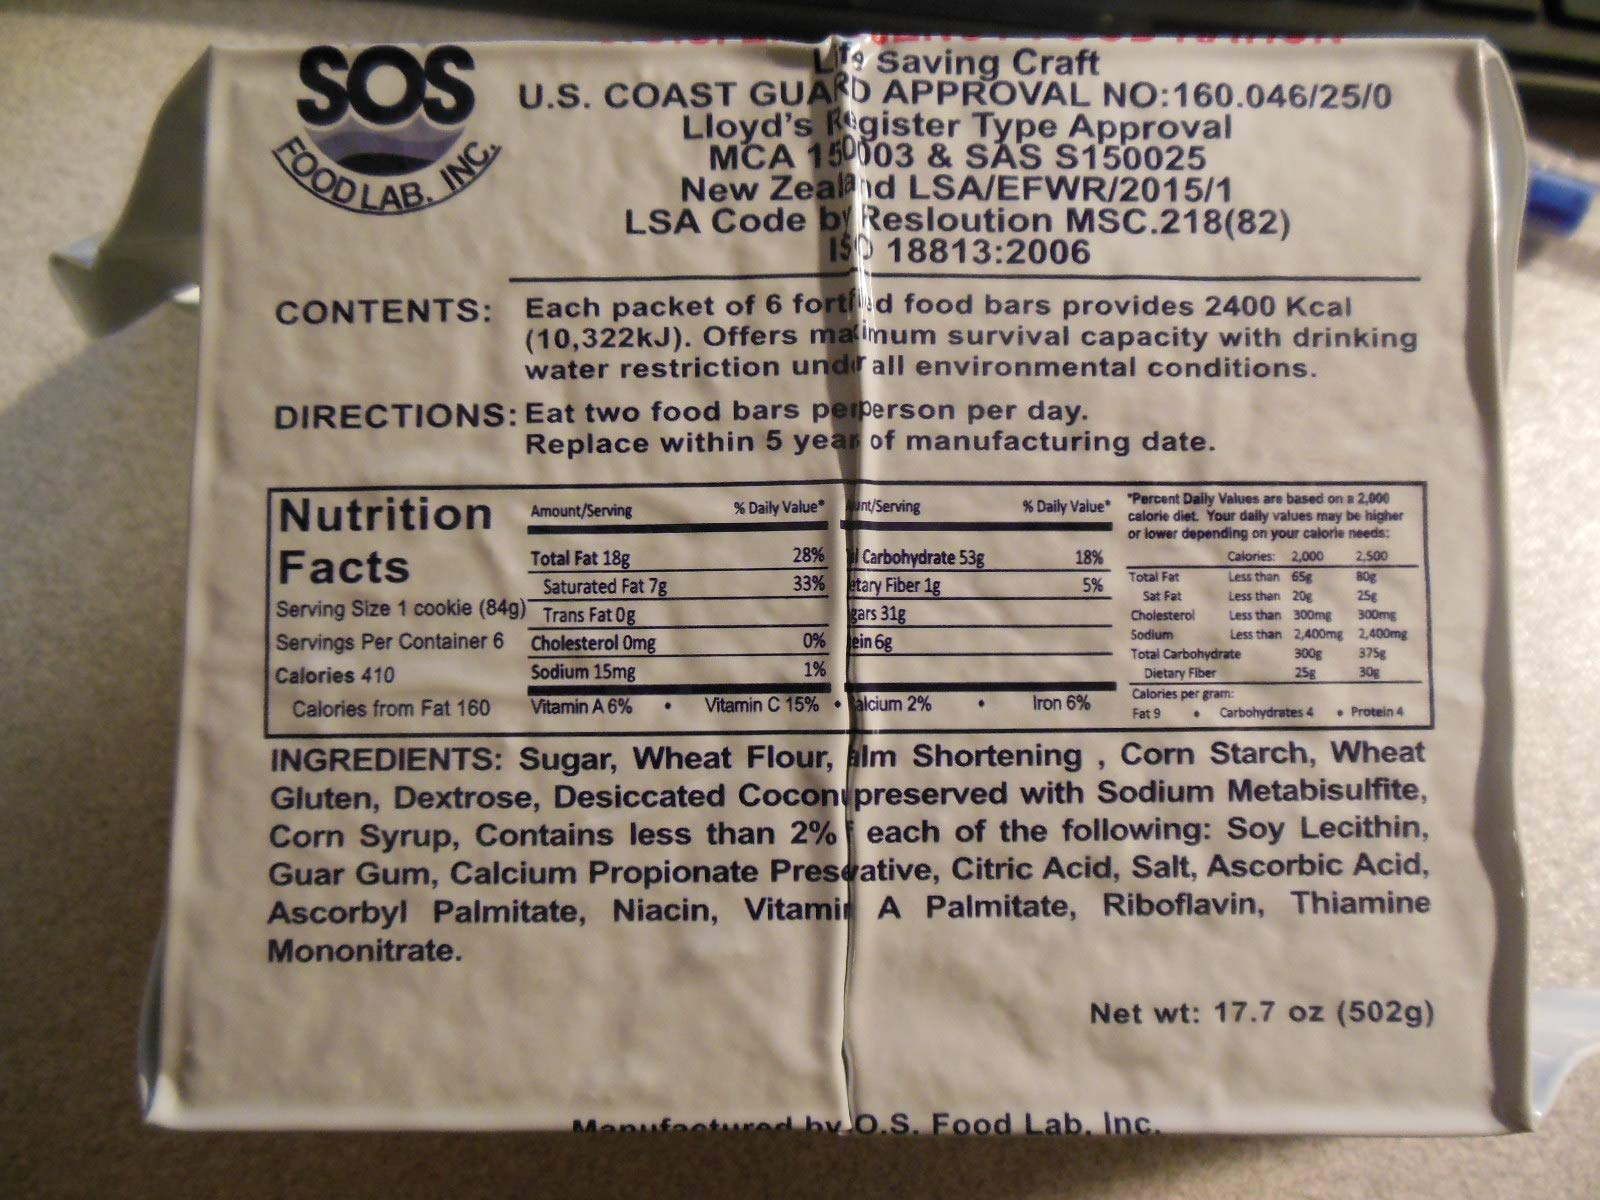 SOS FOOD LAB 2400 CALORIE EMERGENCY FOOD BAR PACKETS (U.S. Coast Guard Approved) - 8 Packets